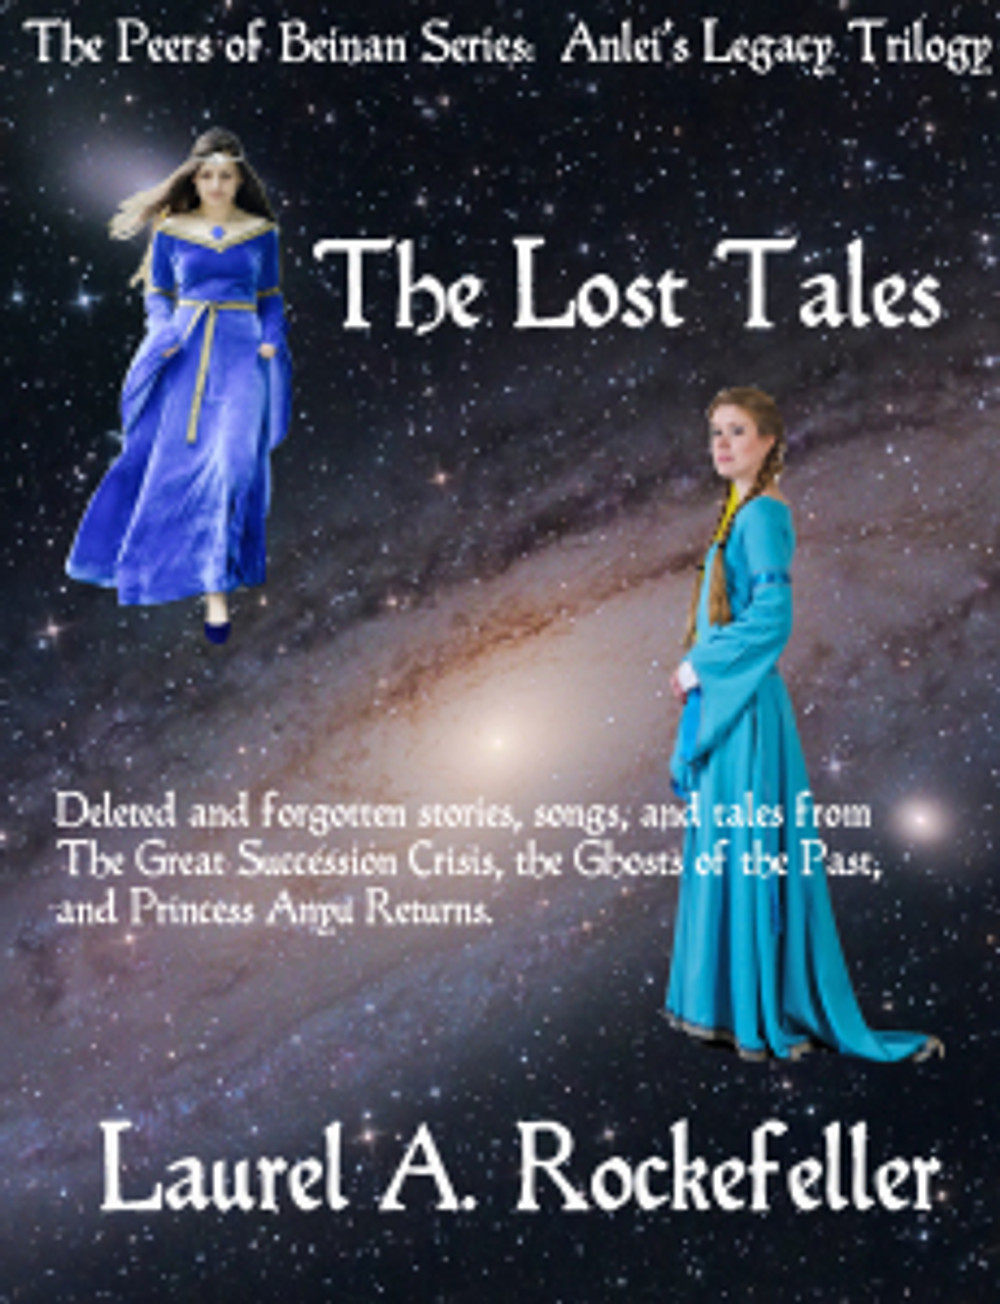 "Cover art for Laurel A. Rockefeller's ""The Lost Tales"" from the Anlei's Legacy Trilogy."